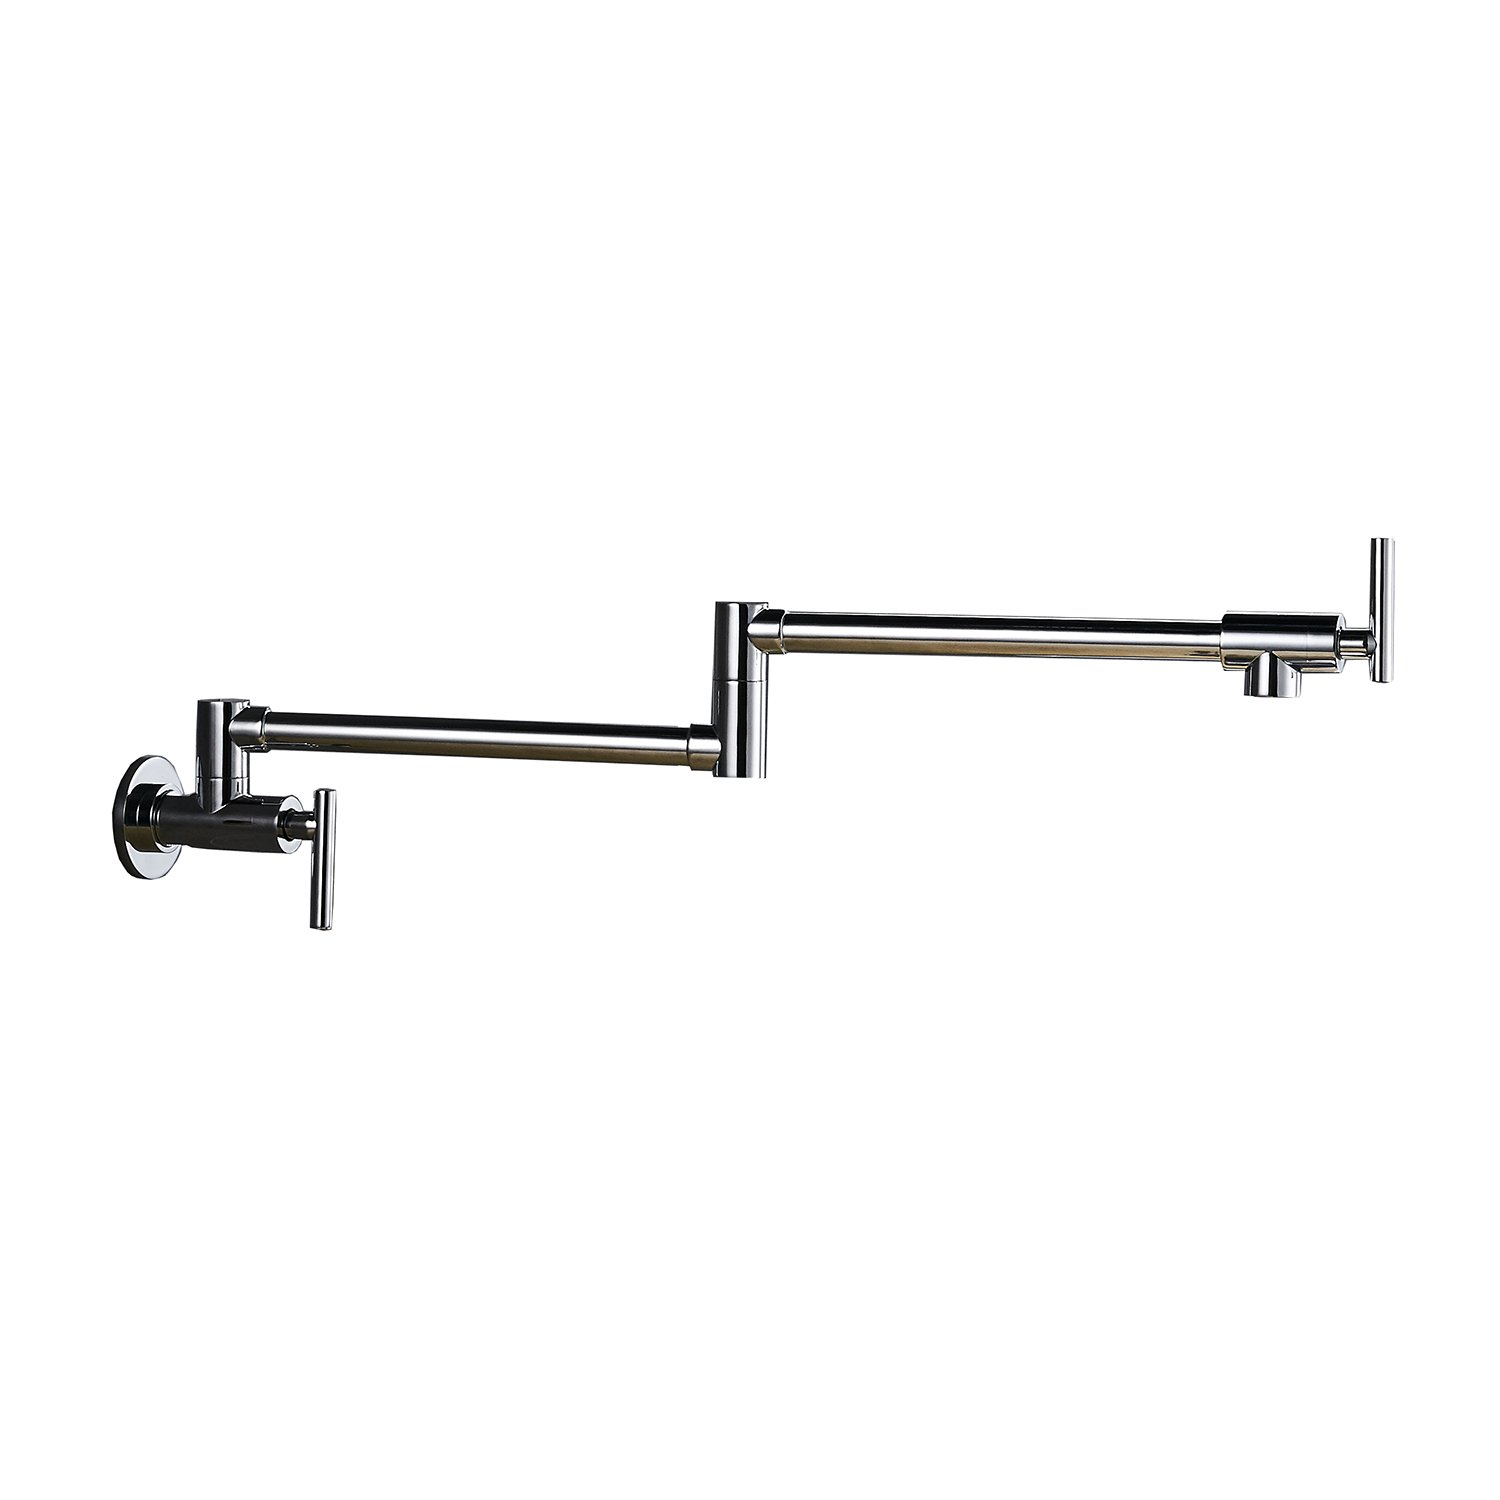 BWE Chrome Commercial Brass Pot Filler Faucet Folding Stretchable Double Joint Swing Arm Wall Mount Kitchen Faucet by BWE